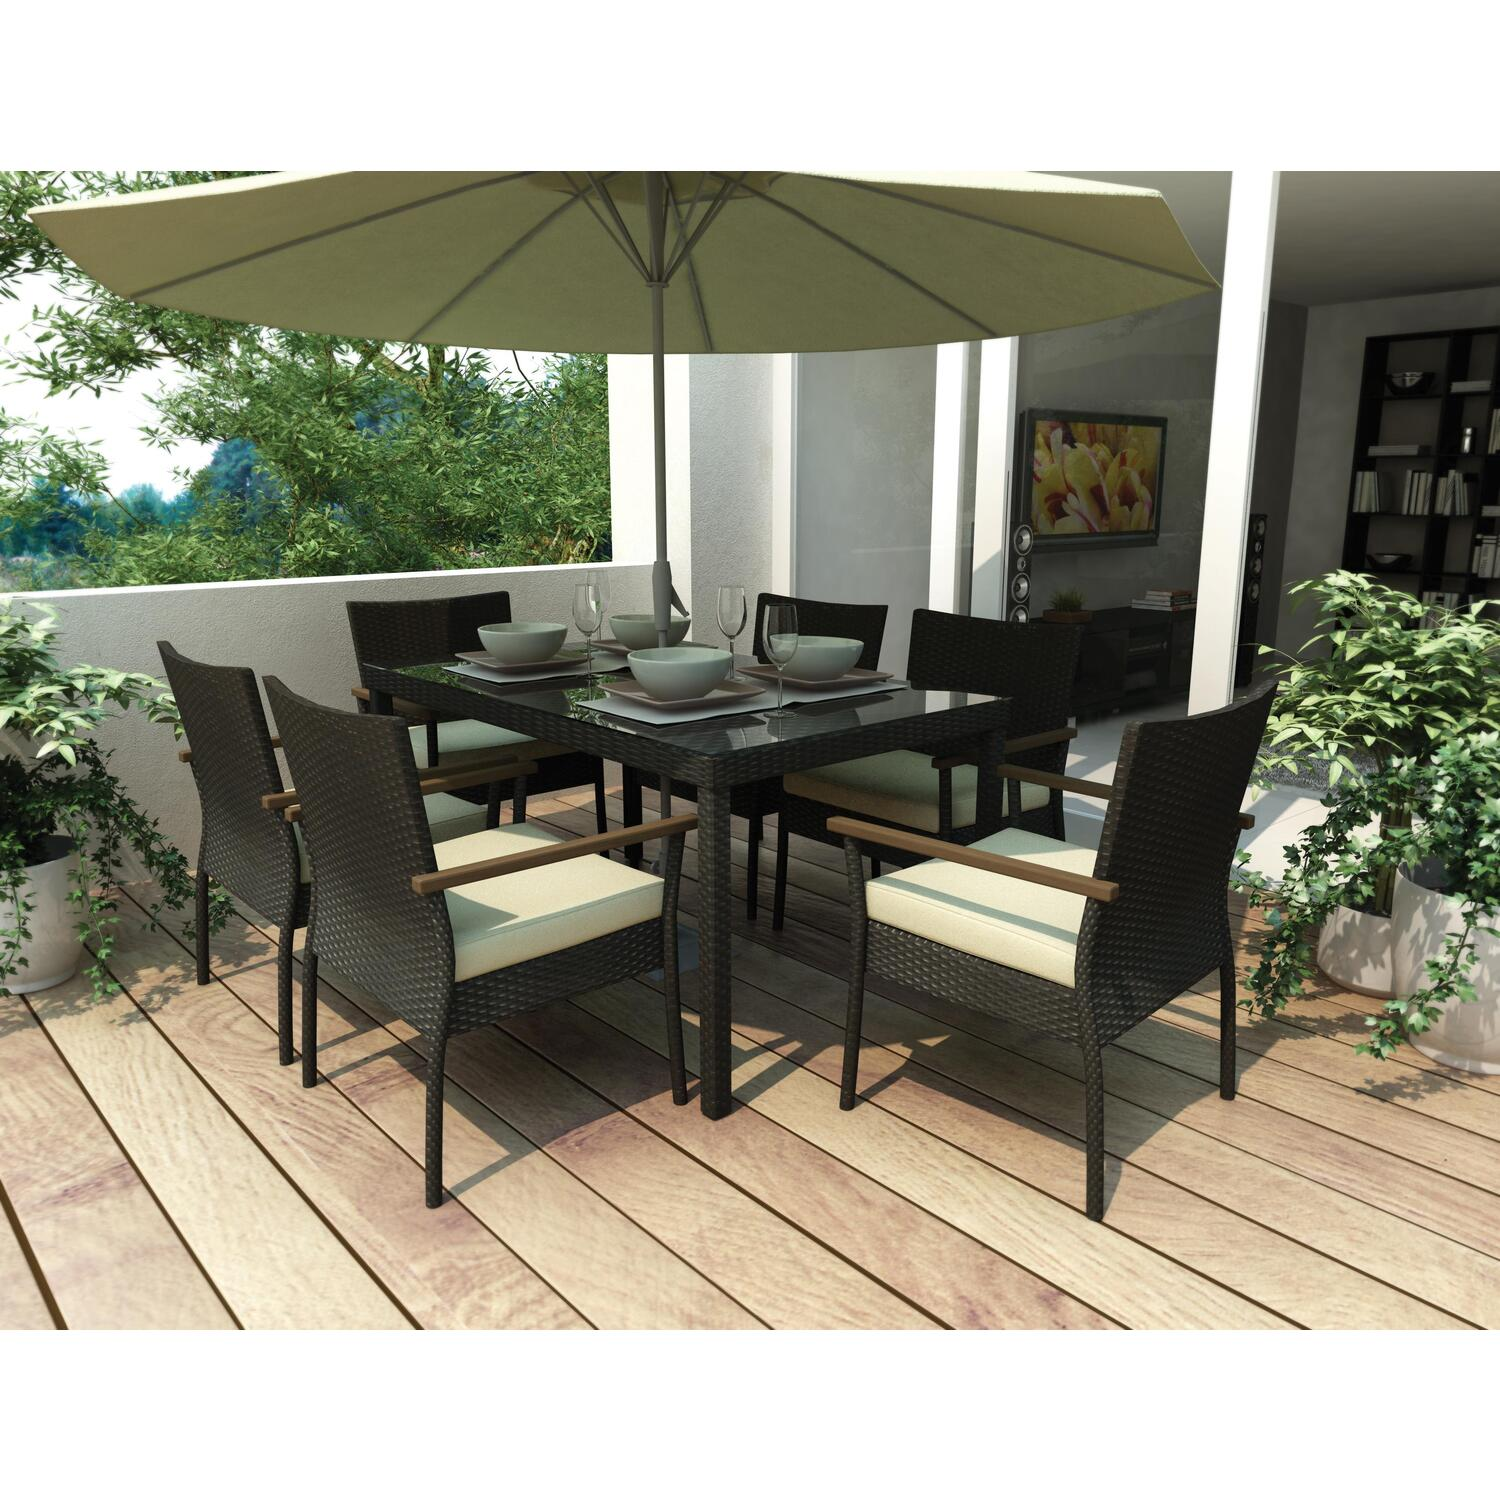 Patio Dinning Sets Design Ideas